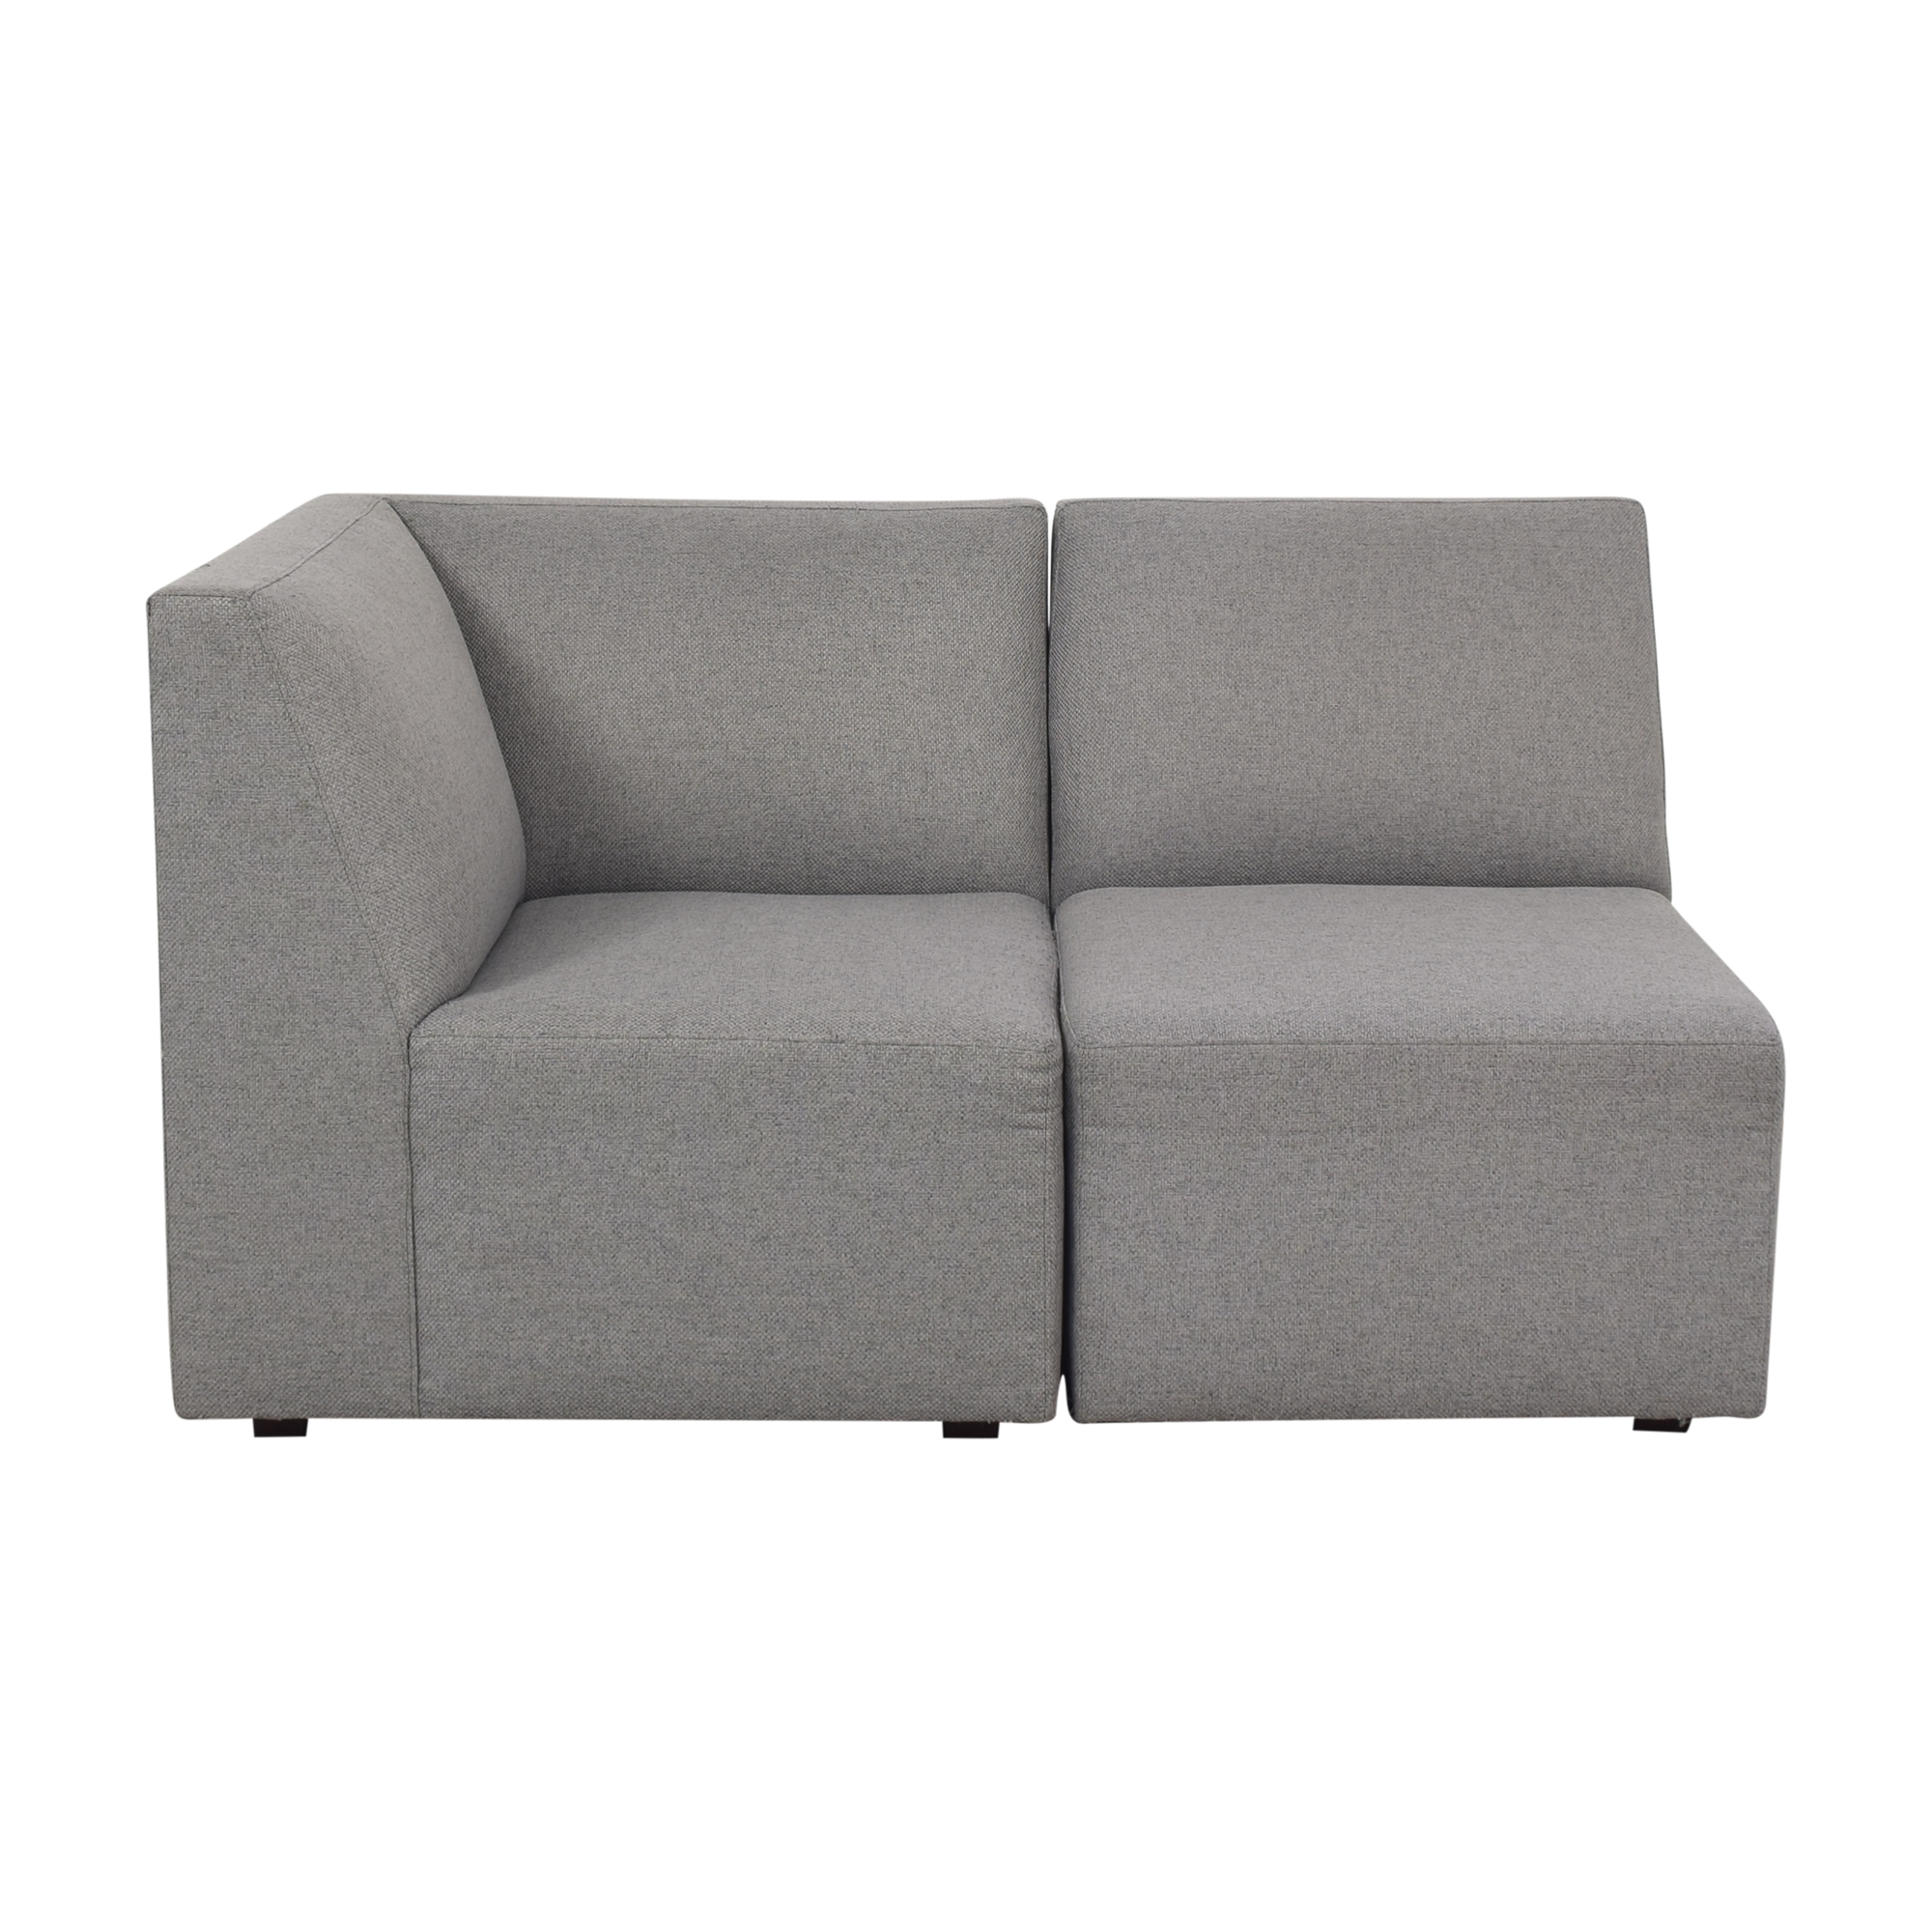 CB2 CB2 Modern Sectional ma